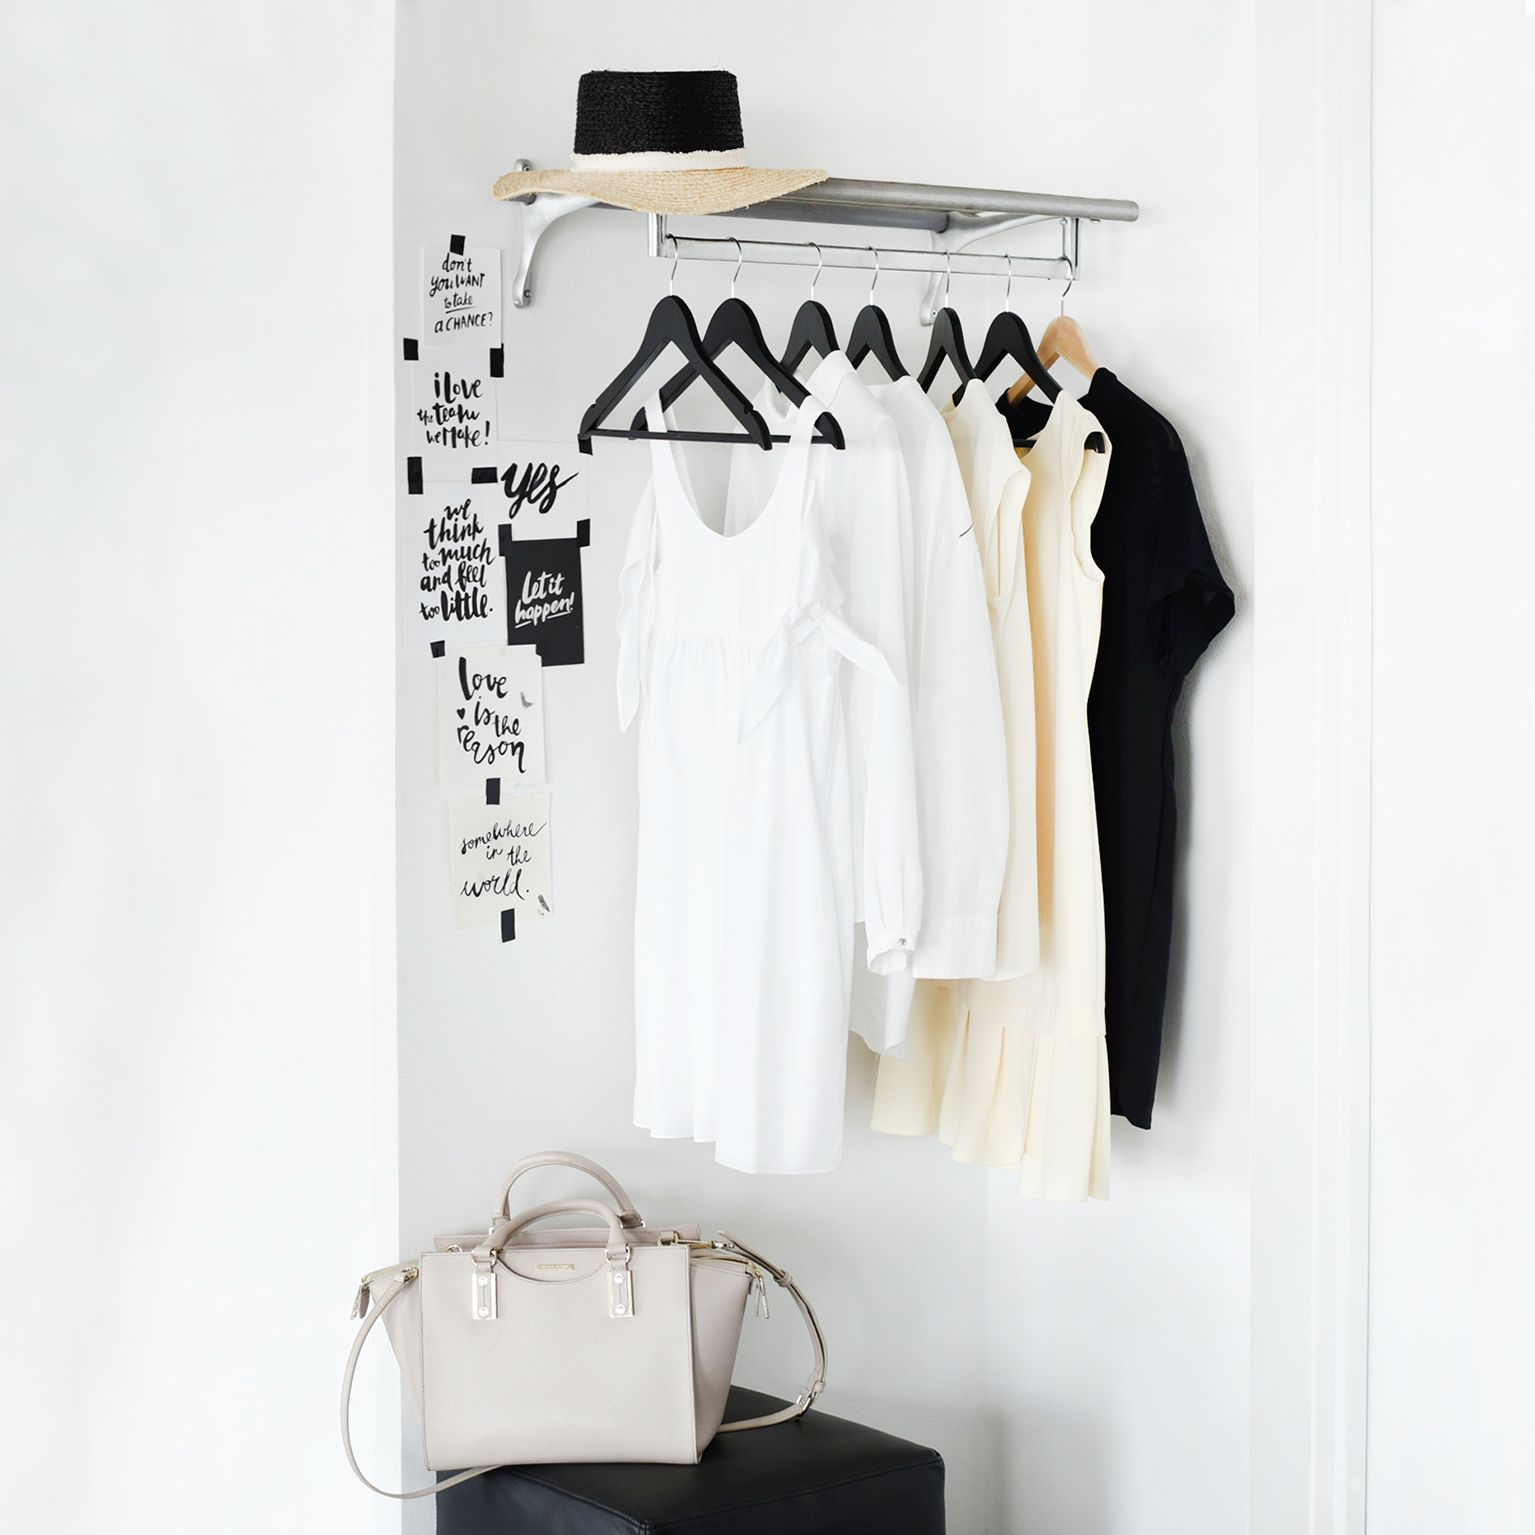 Interior. Monochrome interior. Scandinavian home. Wall gallery. Print design. Graphic design. Lettering. Typography. Home inspiration. Home styling. Wardrobe. Fashion. Style. Lifestyle. Wardrobe styling.